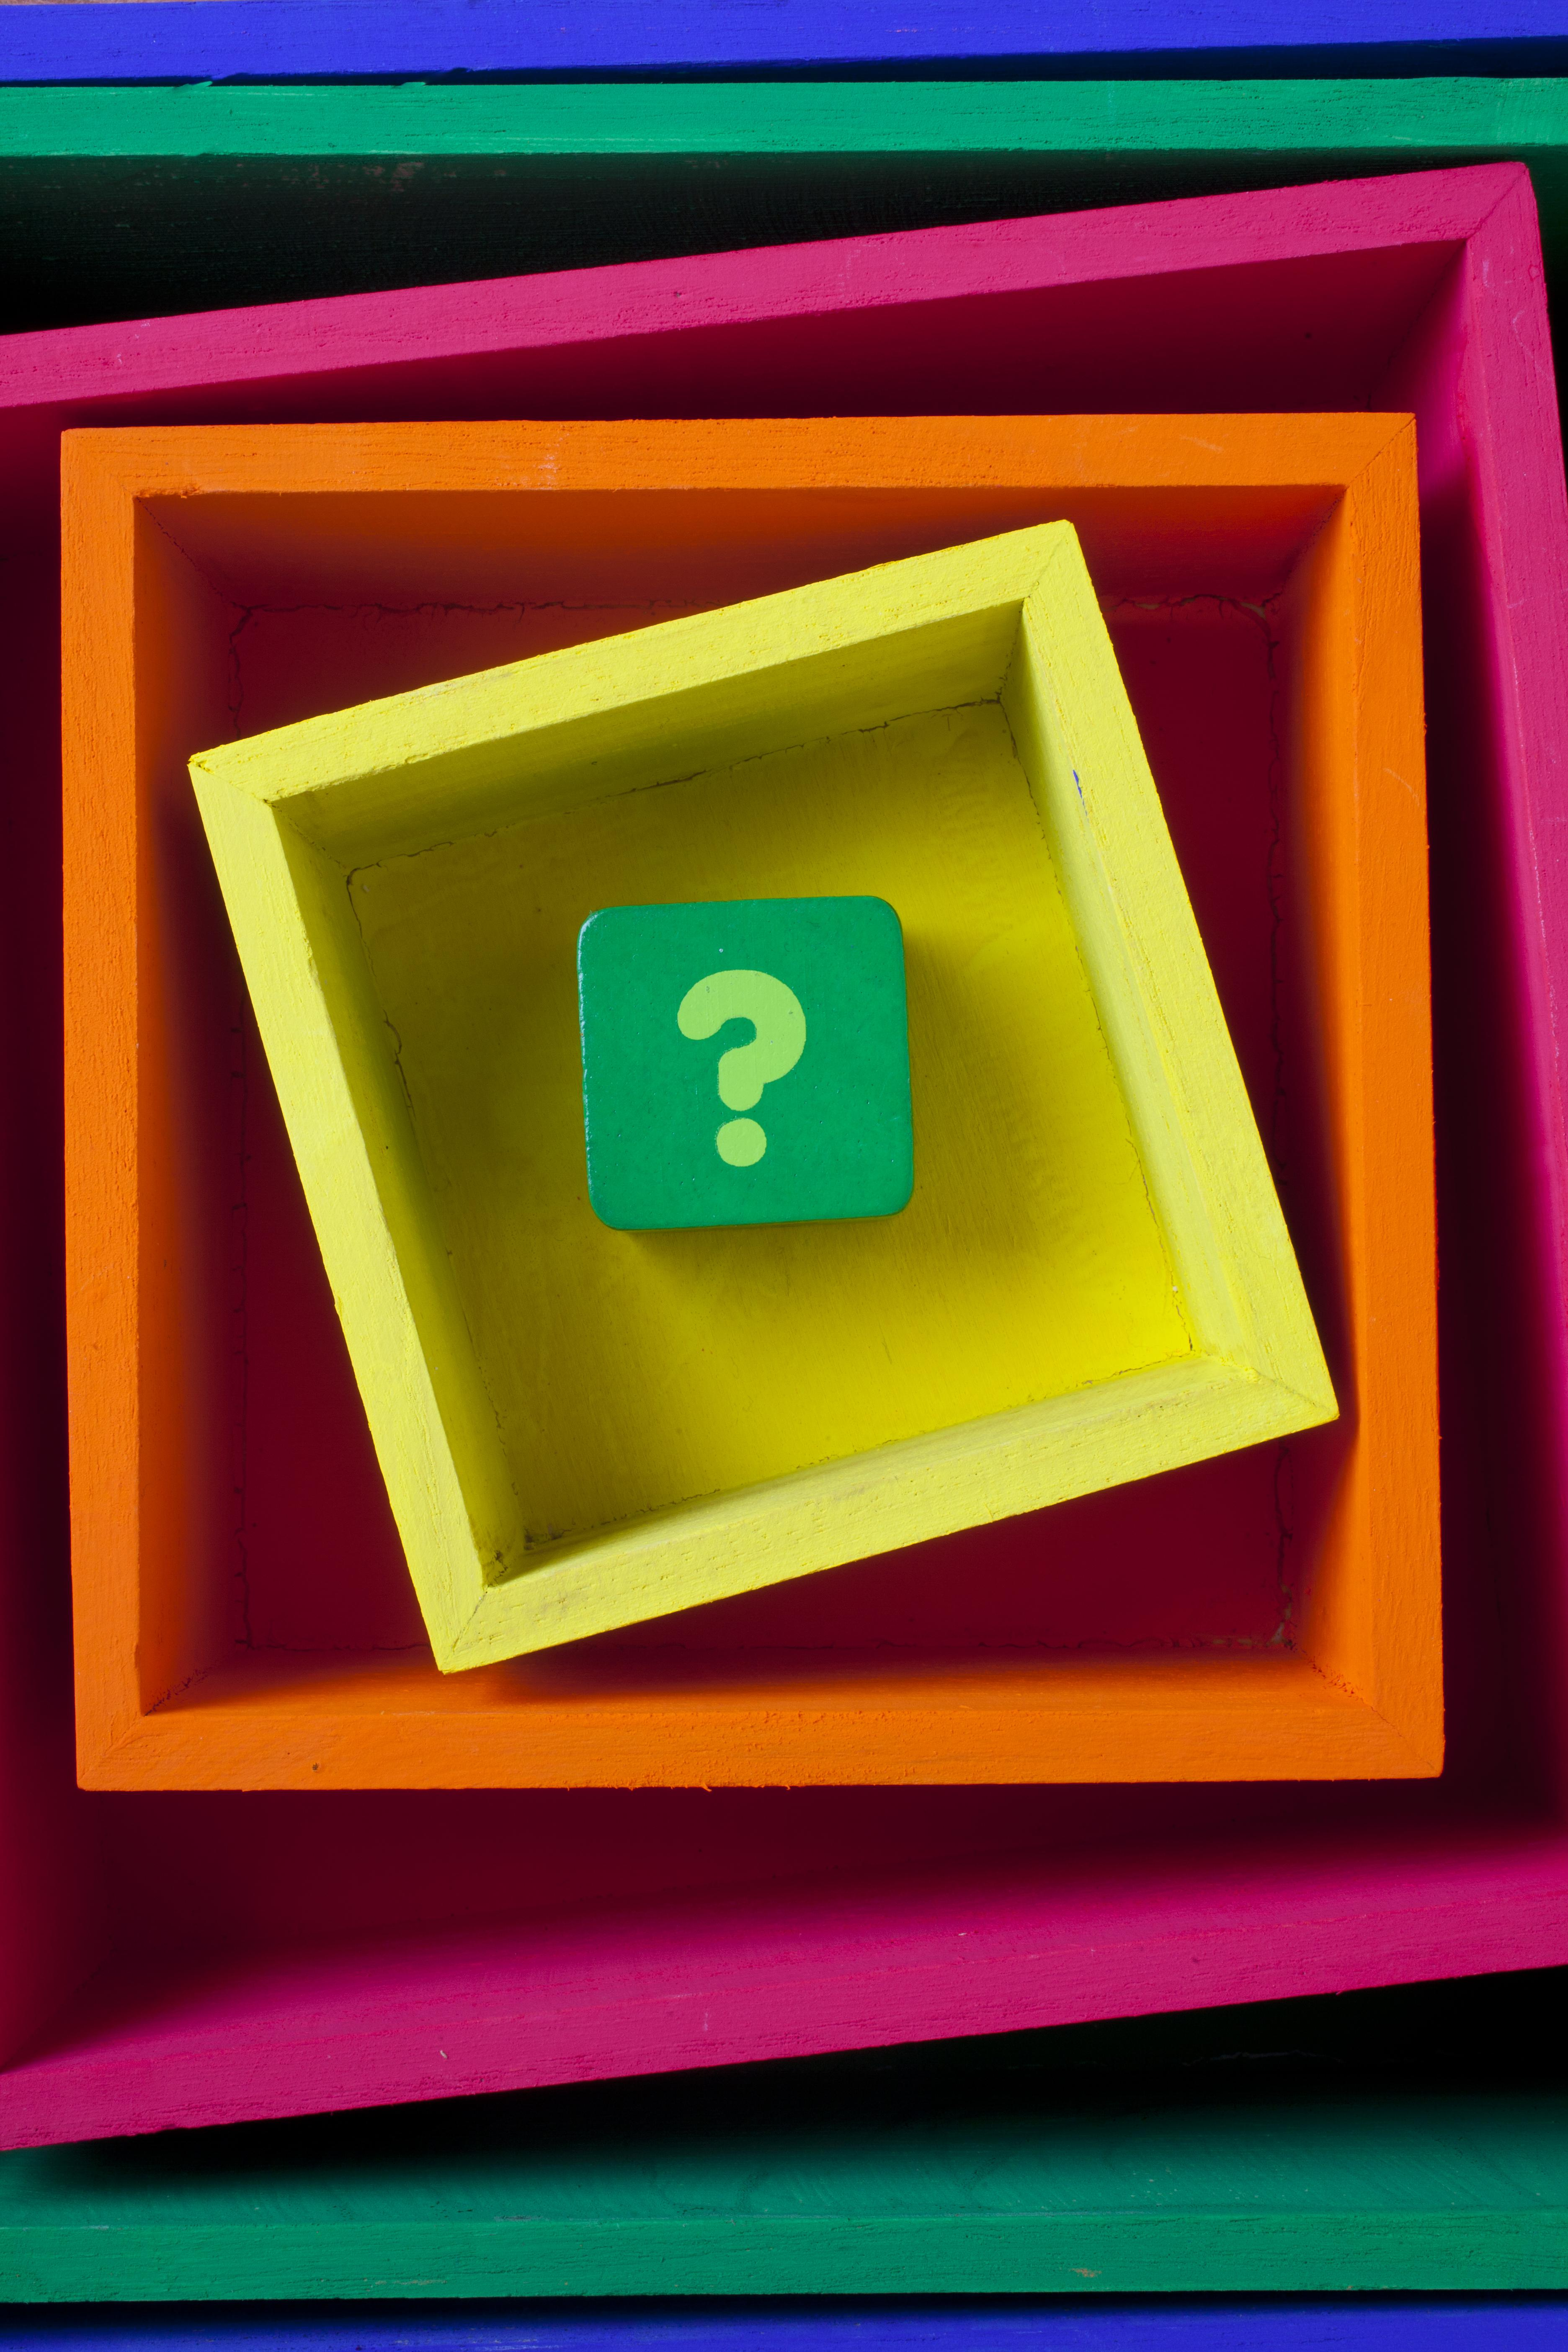 Question mark in boxes